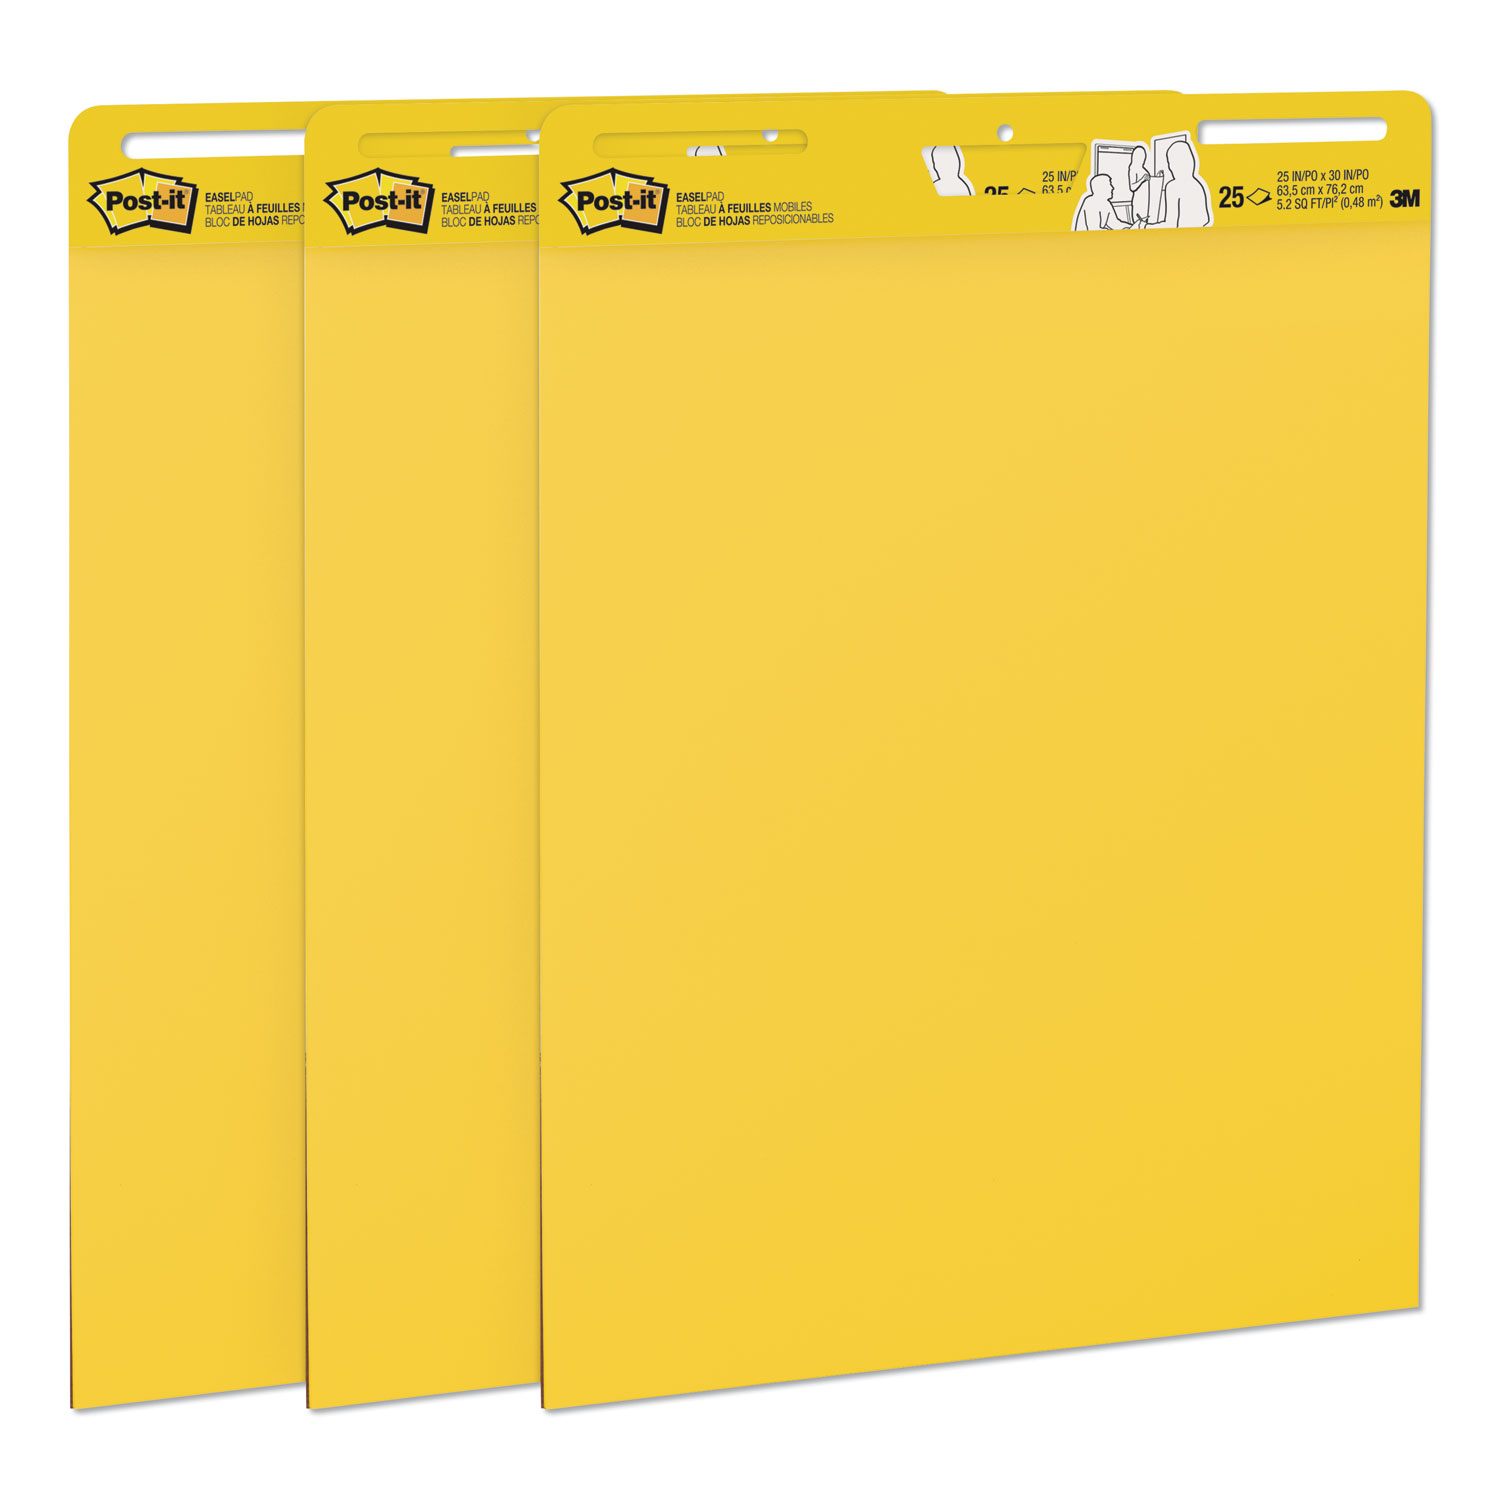 Self-Stick Easel Pads, 25 x 30, Bright Yellow, 25 Sheets, 3/Carton